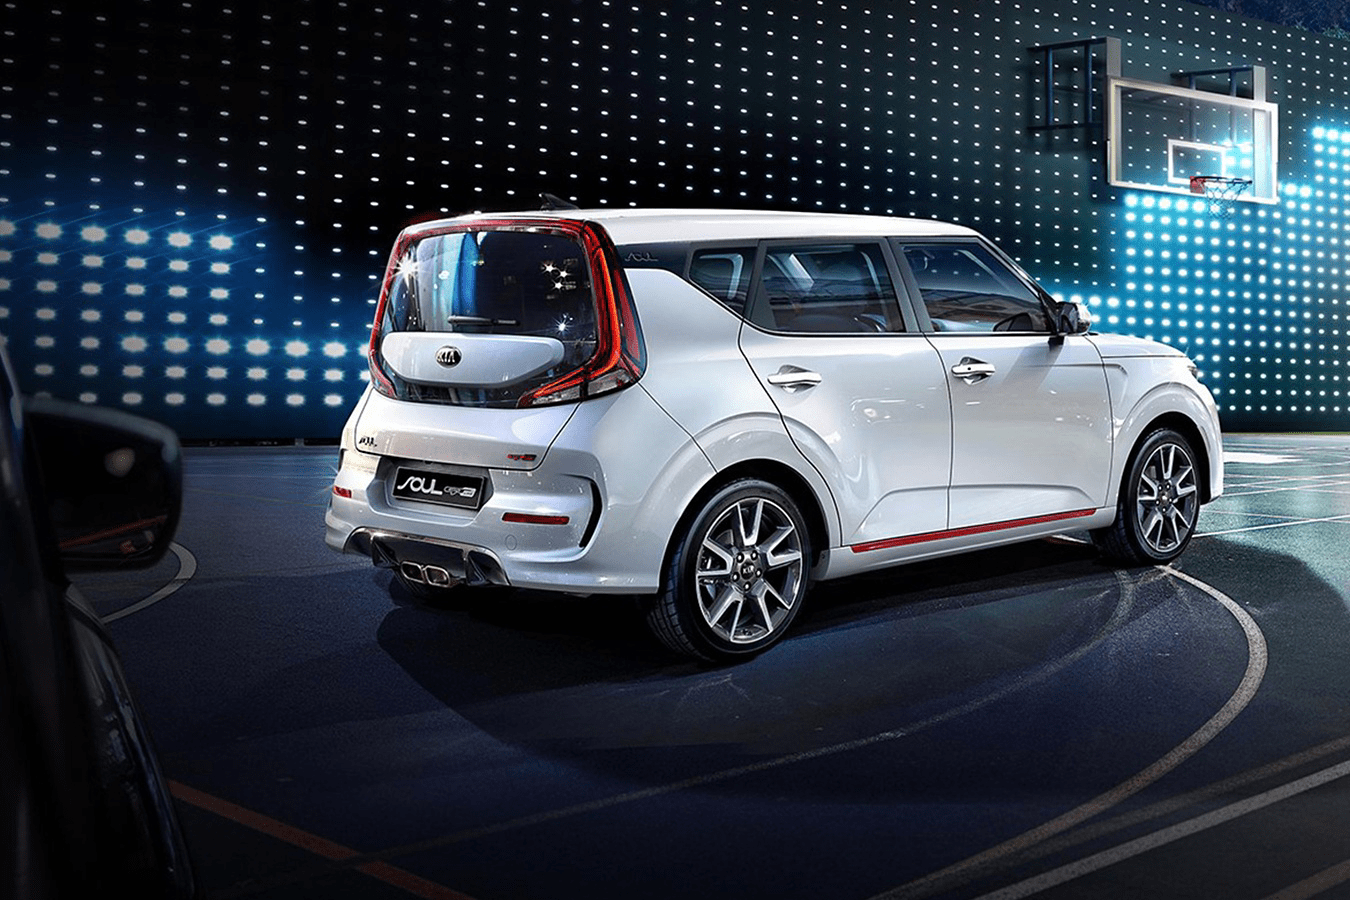 2020 Kia Soul exterior on basketball court